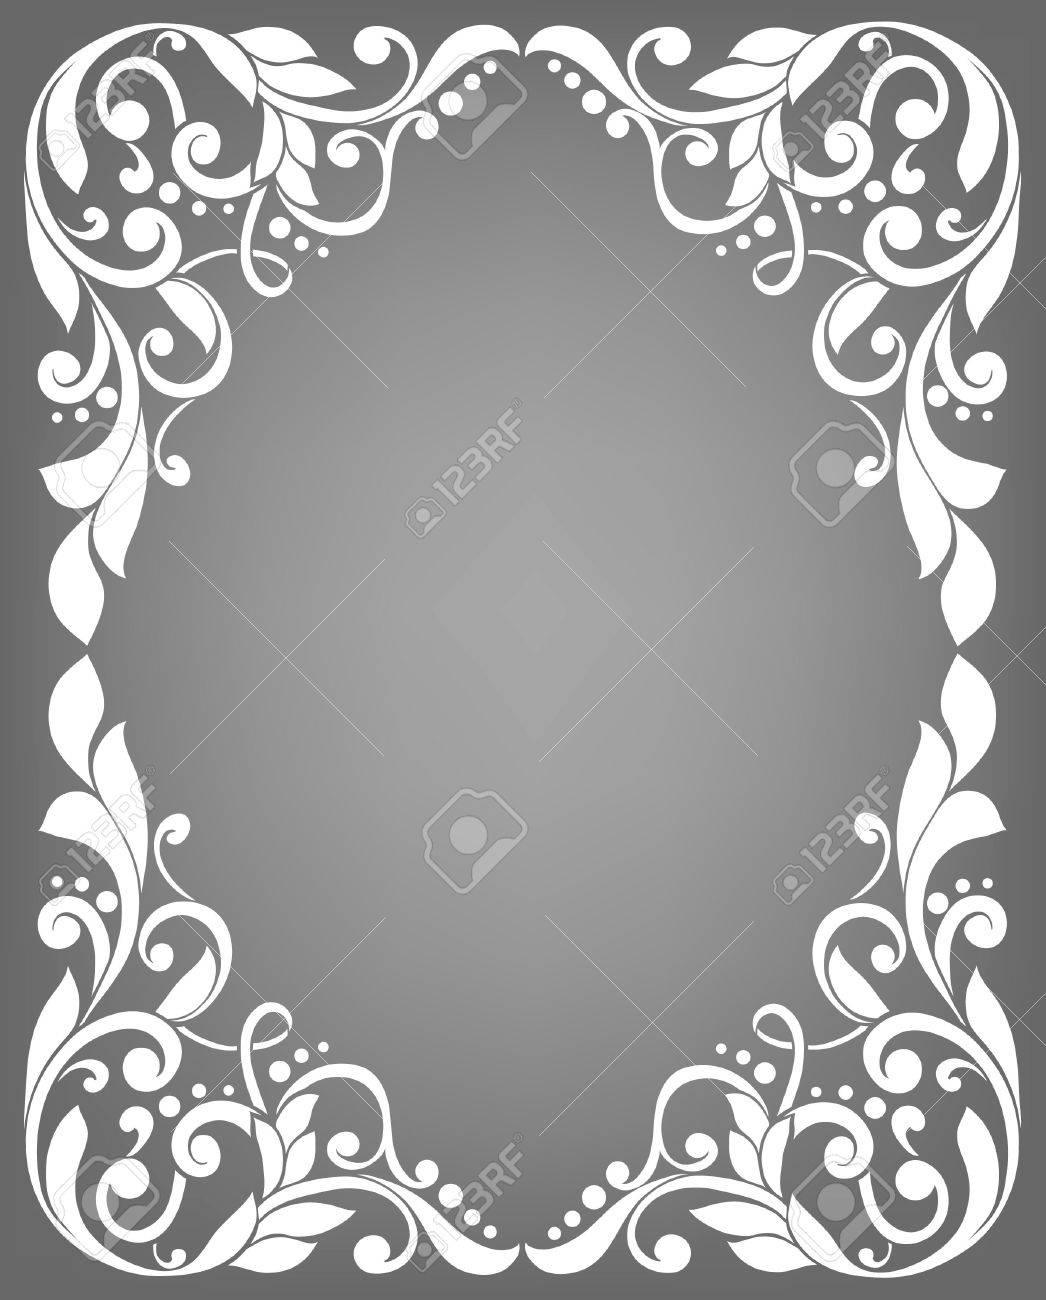 Vintage Filigree Frame Royalty Free Cliparts, Vectors, And Stock ...